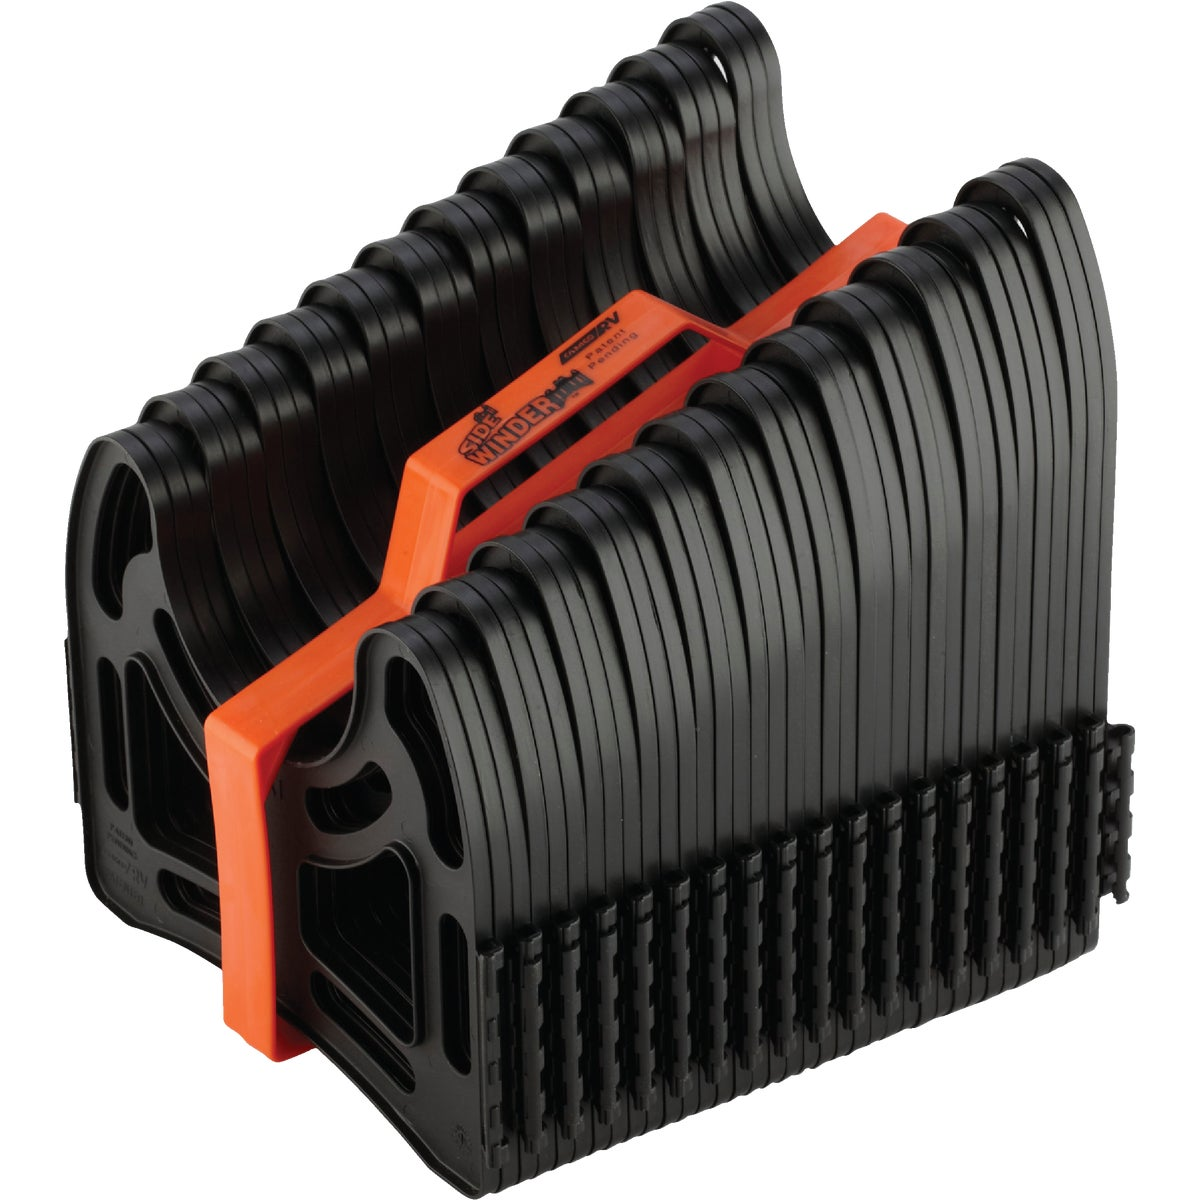 15' SEWER HOSE SUPPORT - 43041 by Camco Mfg.